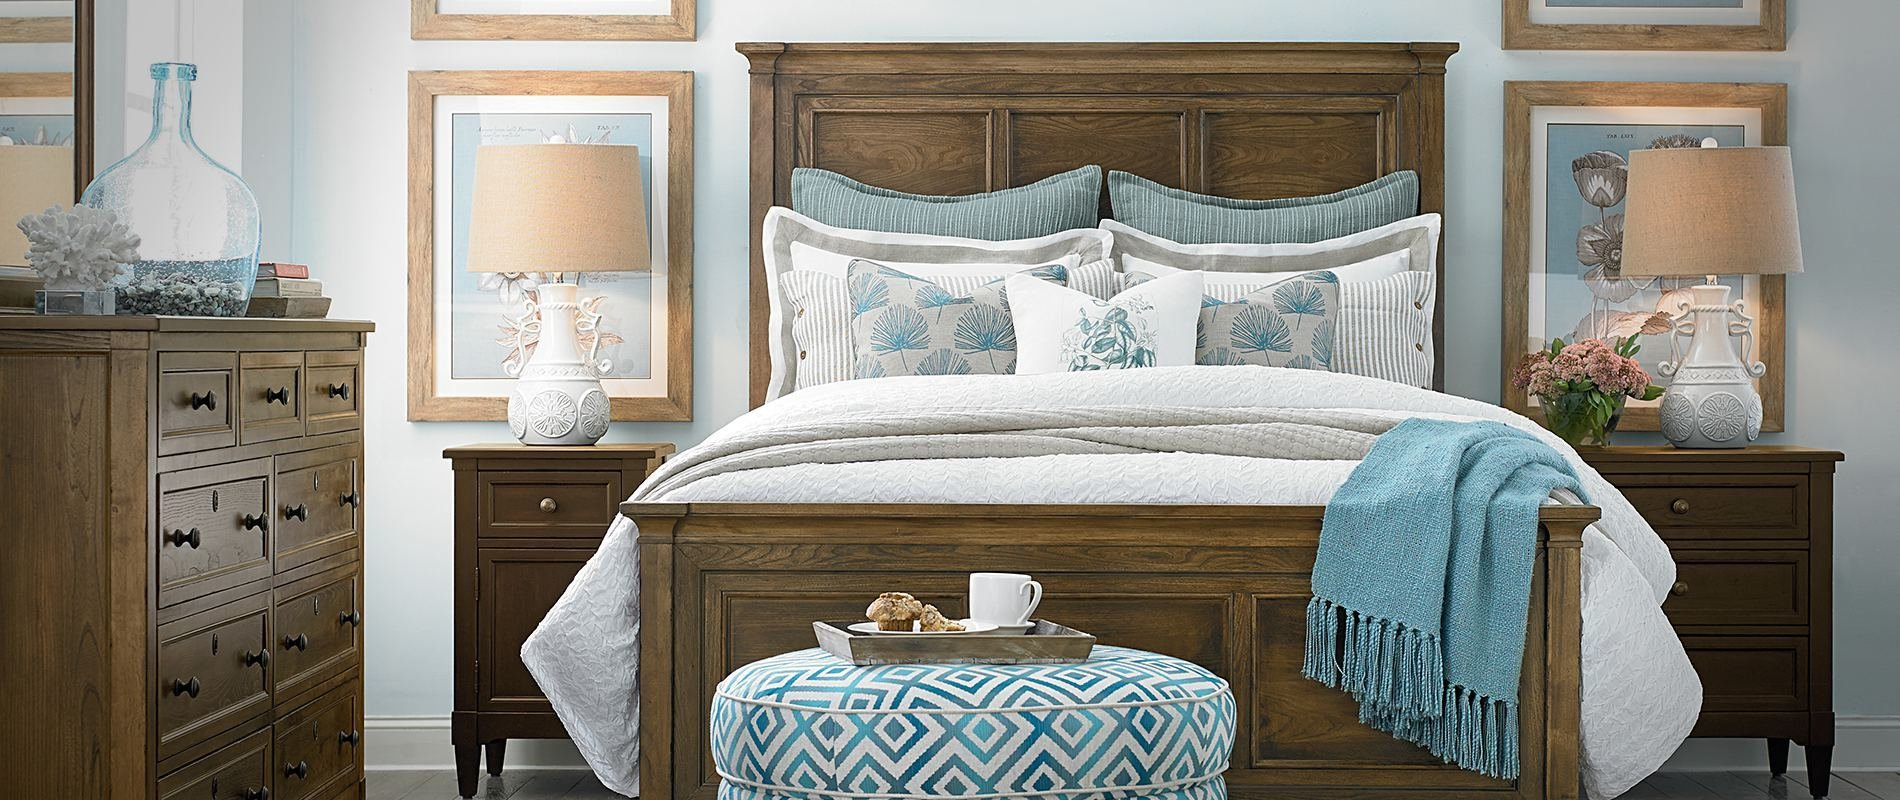 Best Bedroom Furniture Stores In Henderson Nv Home Delightful With Pictures